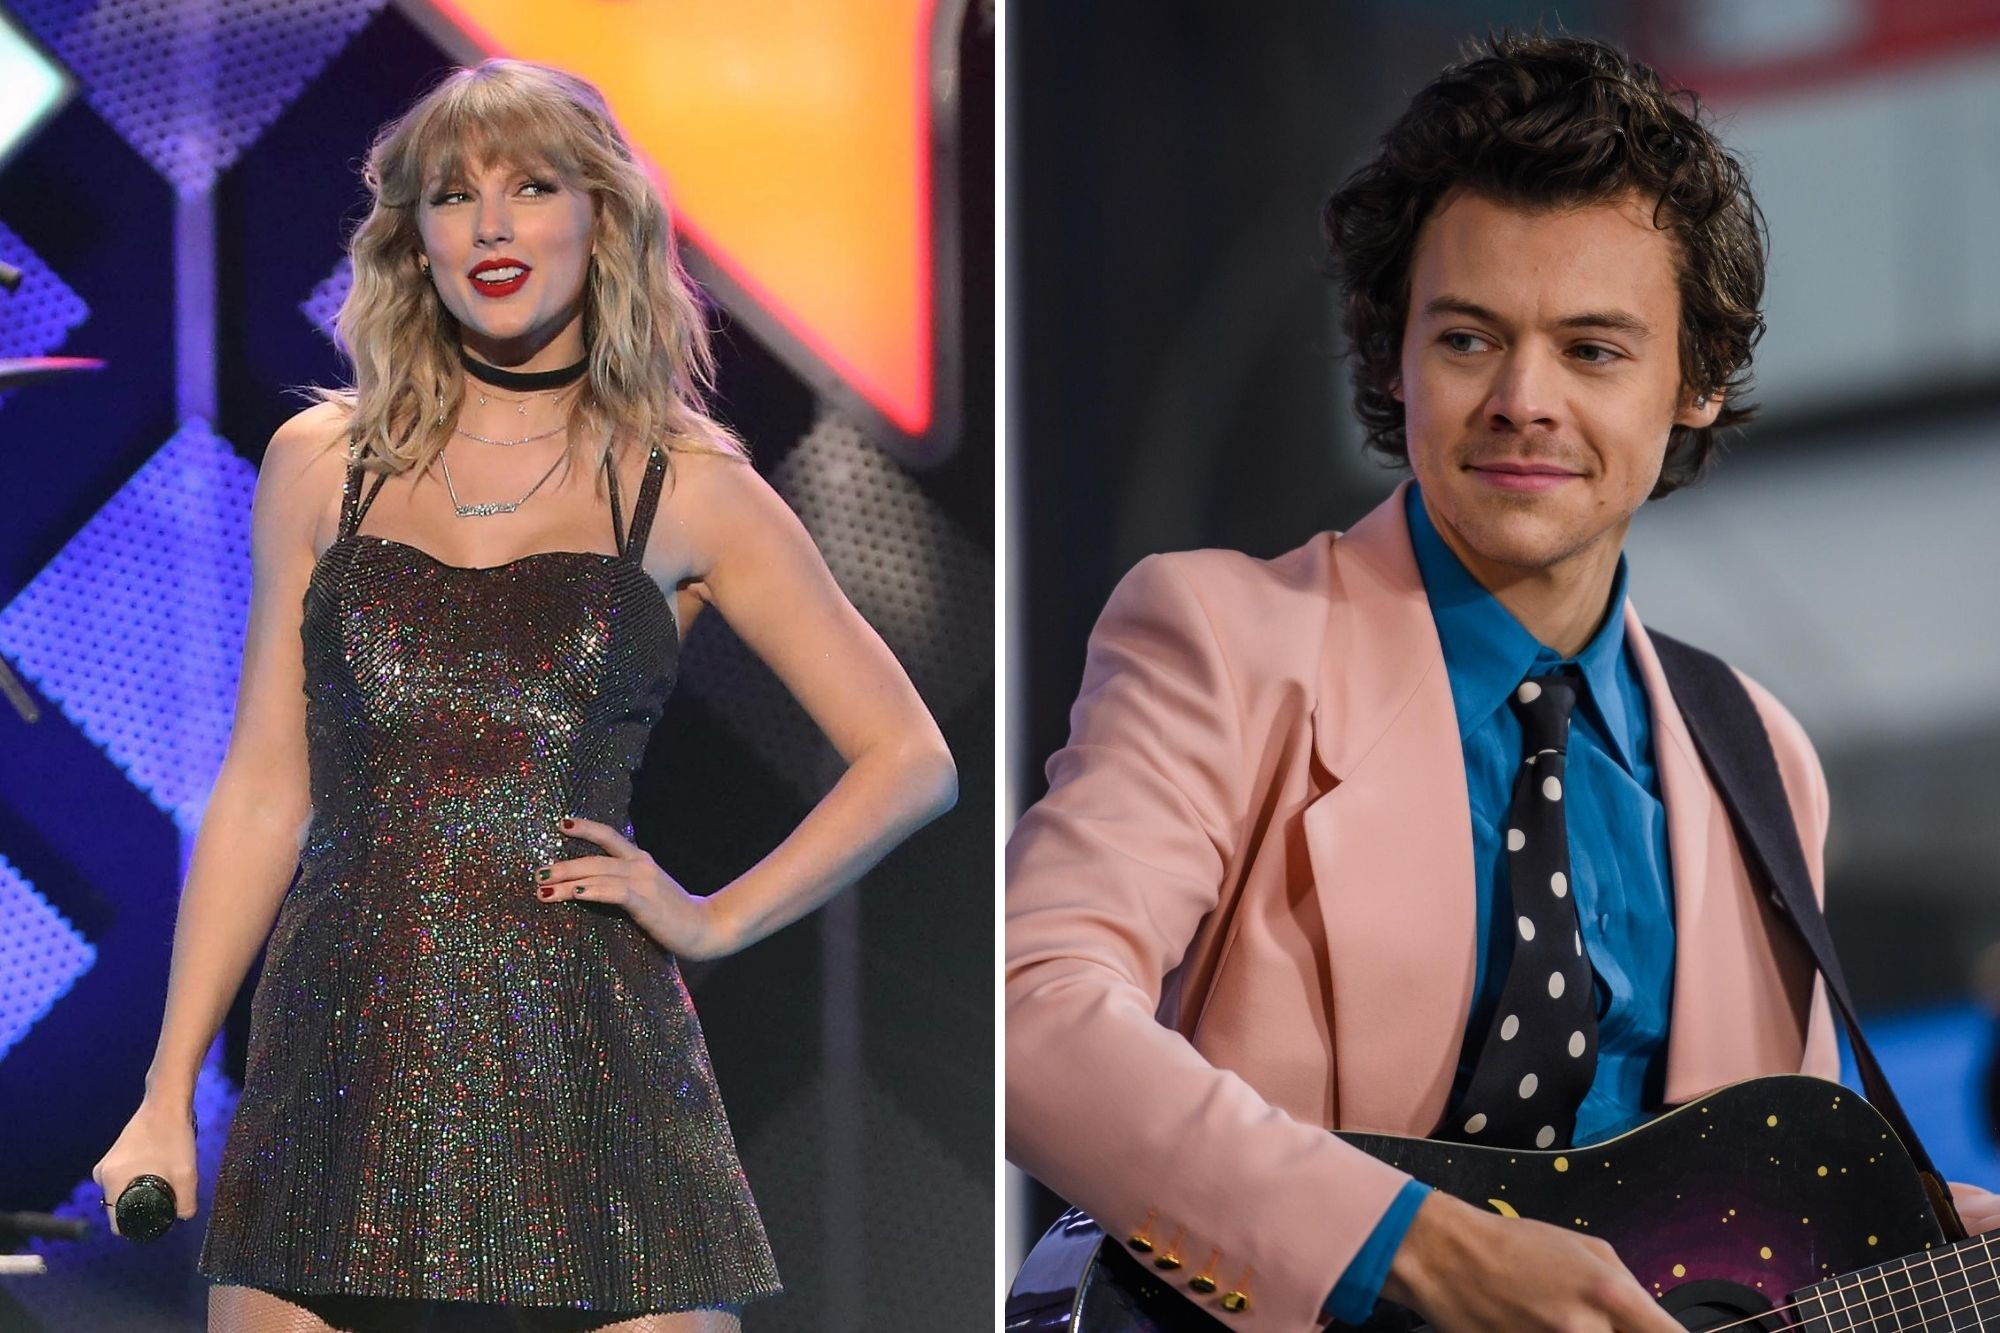 Taylor Swift onstage during the iHeartRadio's Z100 Jingle Ball 2019 at Madison Square Garden on Dec. 13, 2019 / Harry Styles on The TODAY Show Feb. 26, 2020.